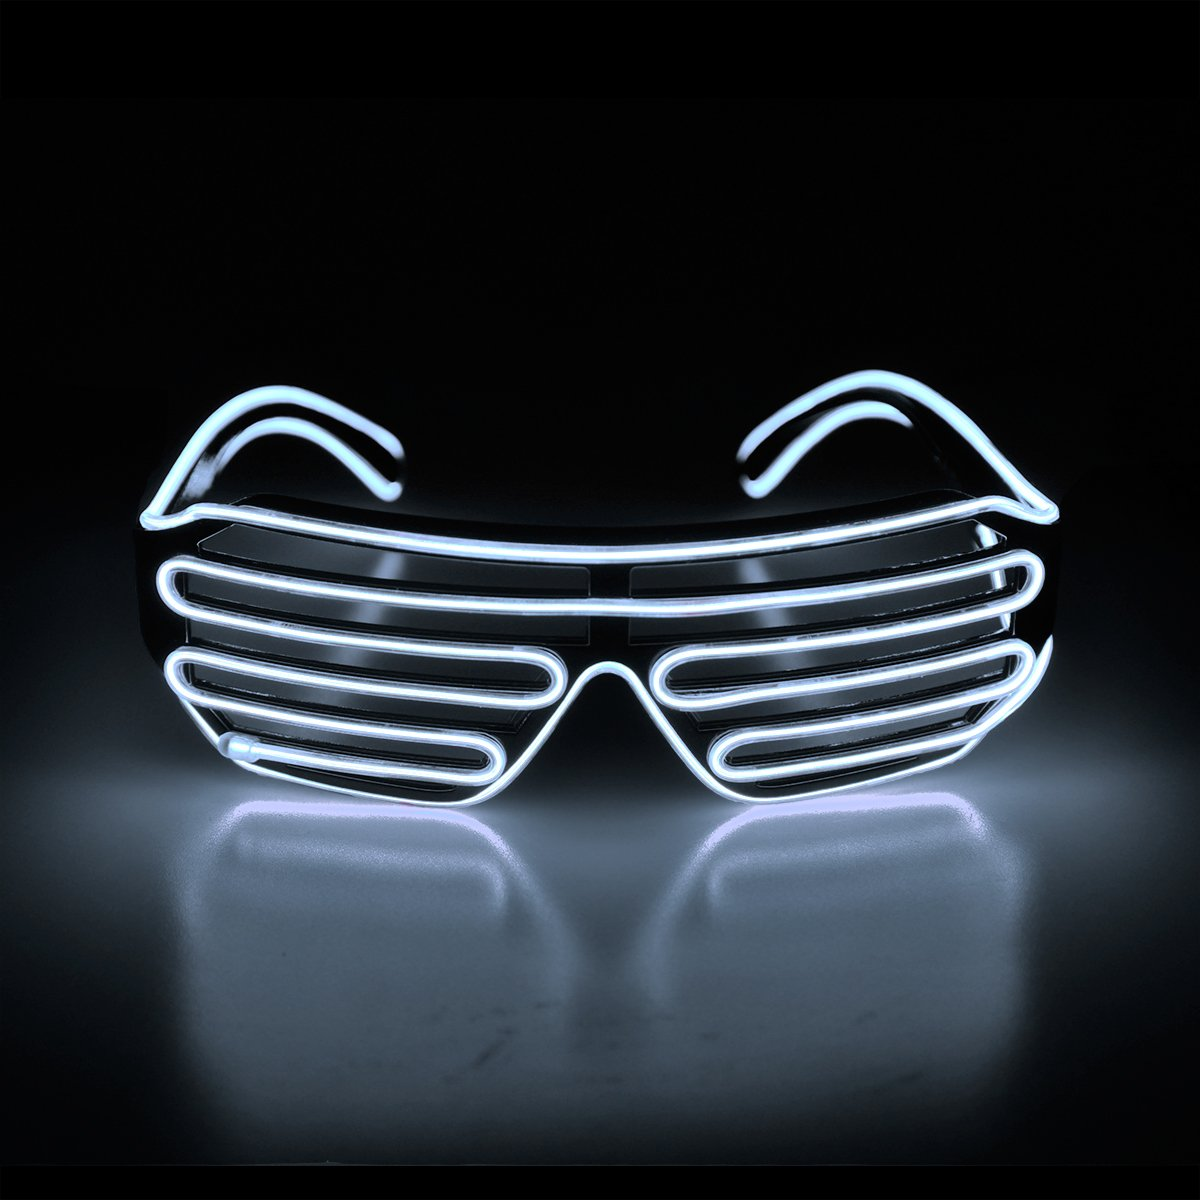 EDM Aquat Light Up Shutter LED Neon Rave Glasses El Wire DJ Flashing Sunglasses Glow Costumes Voice Activated For 80s Party RB02 Pink, Black Frame